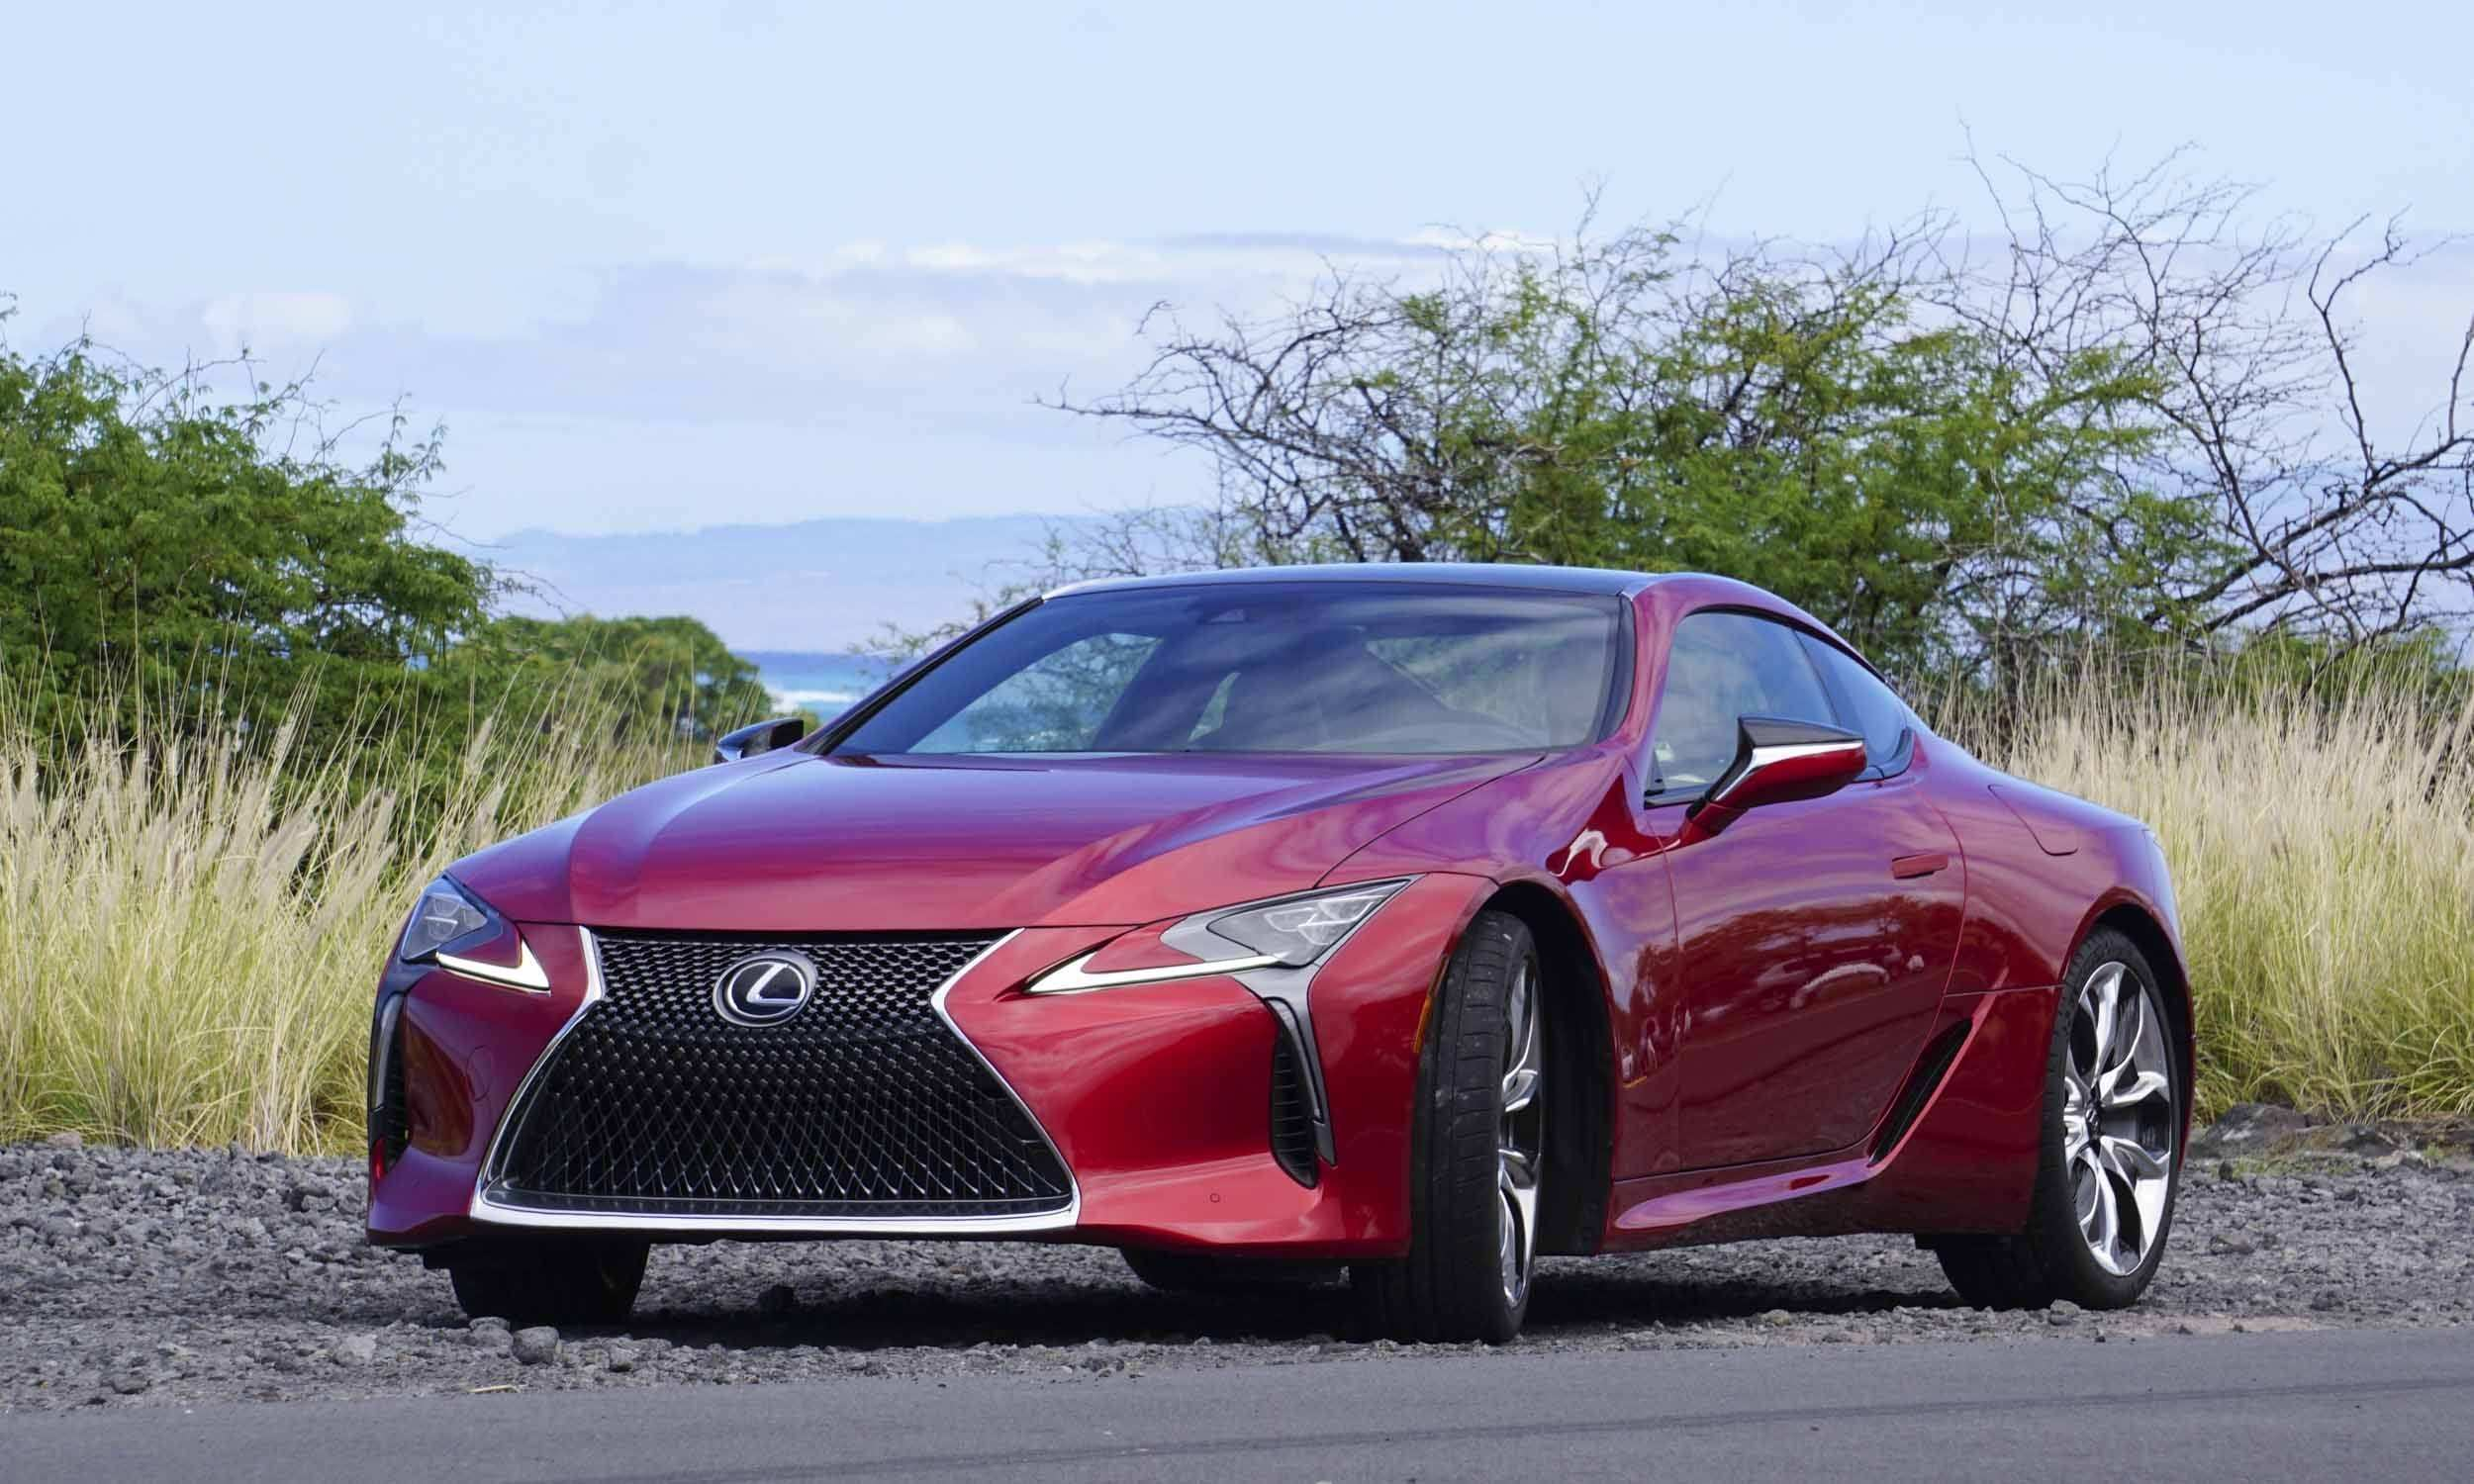 82 Great Lexus Lf Lc Release Date Model with Lexus Lf Lc Release Date